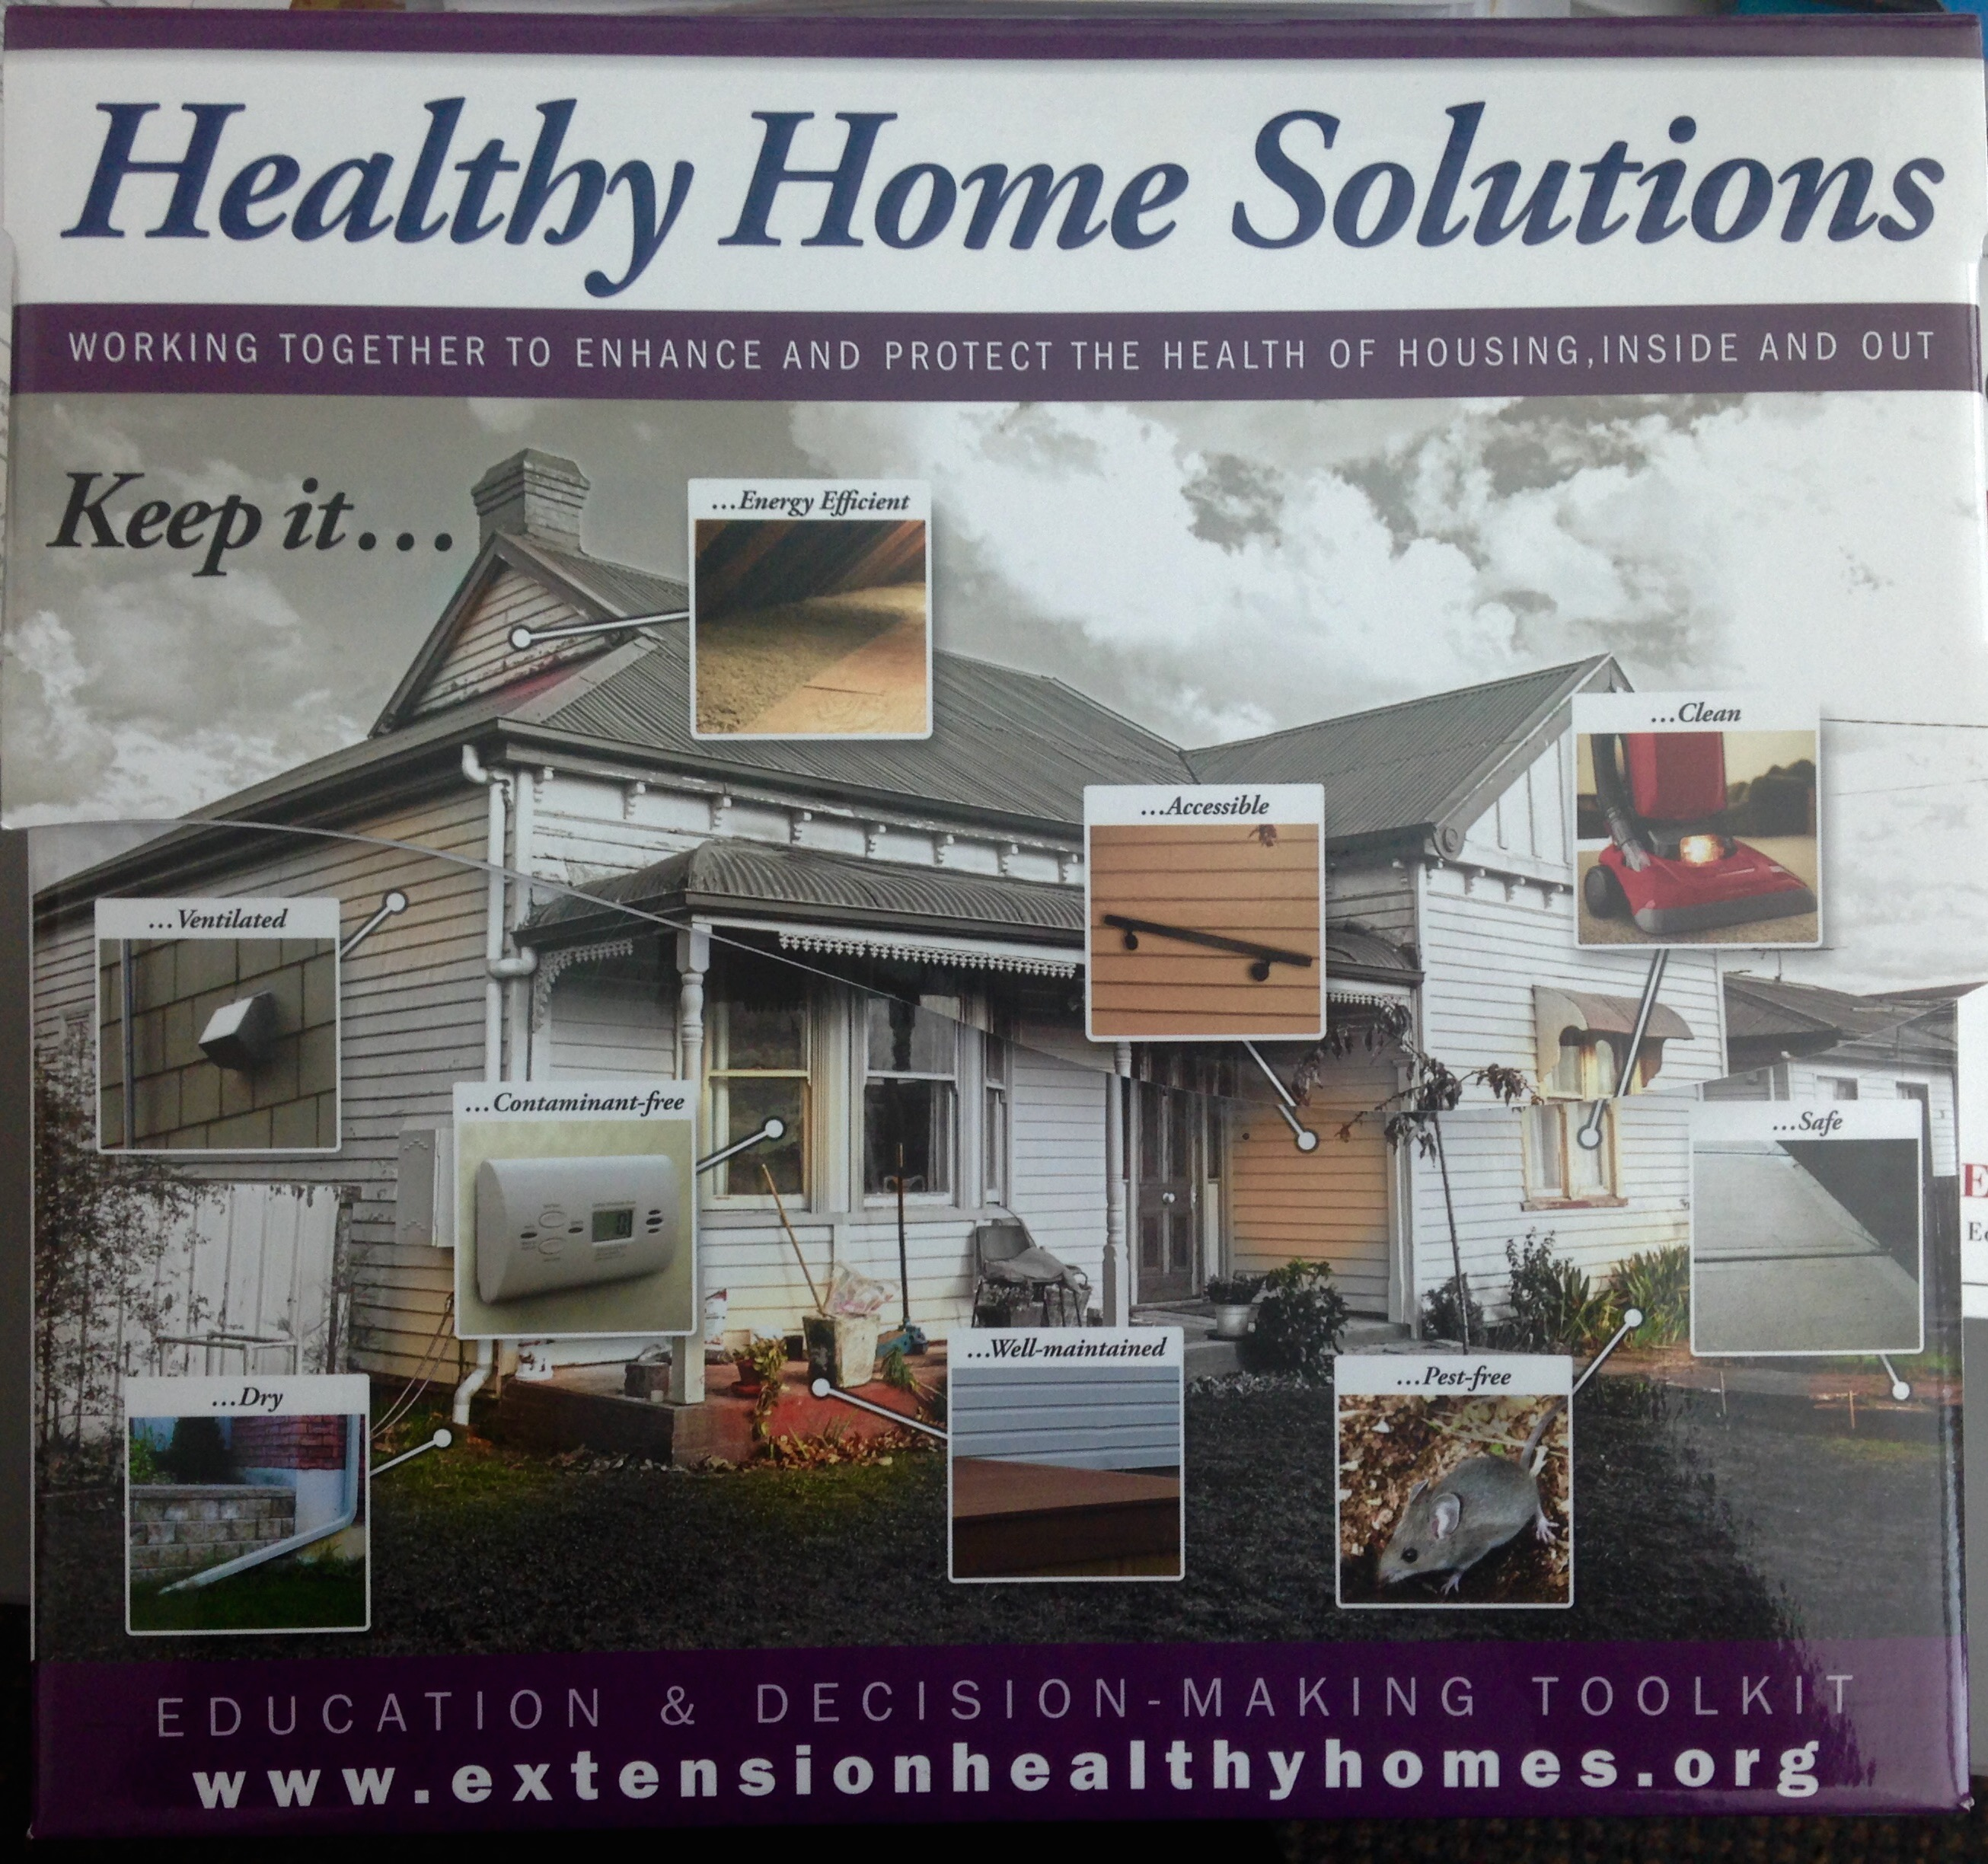 Healthy Home Solution toolkit